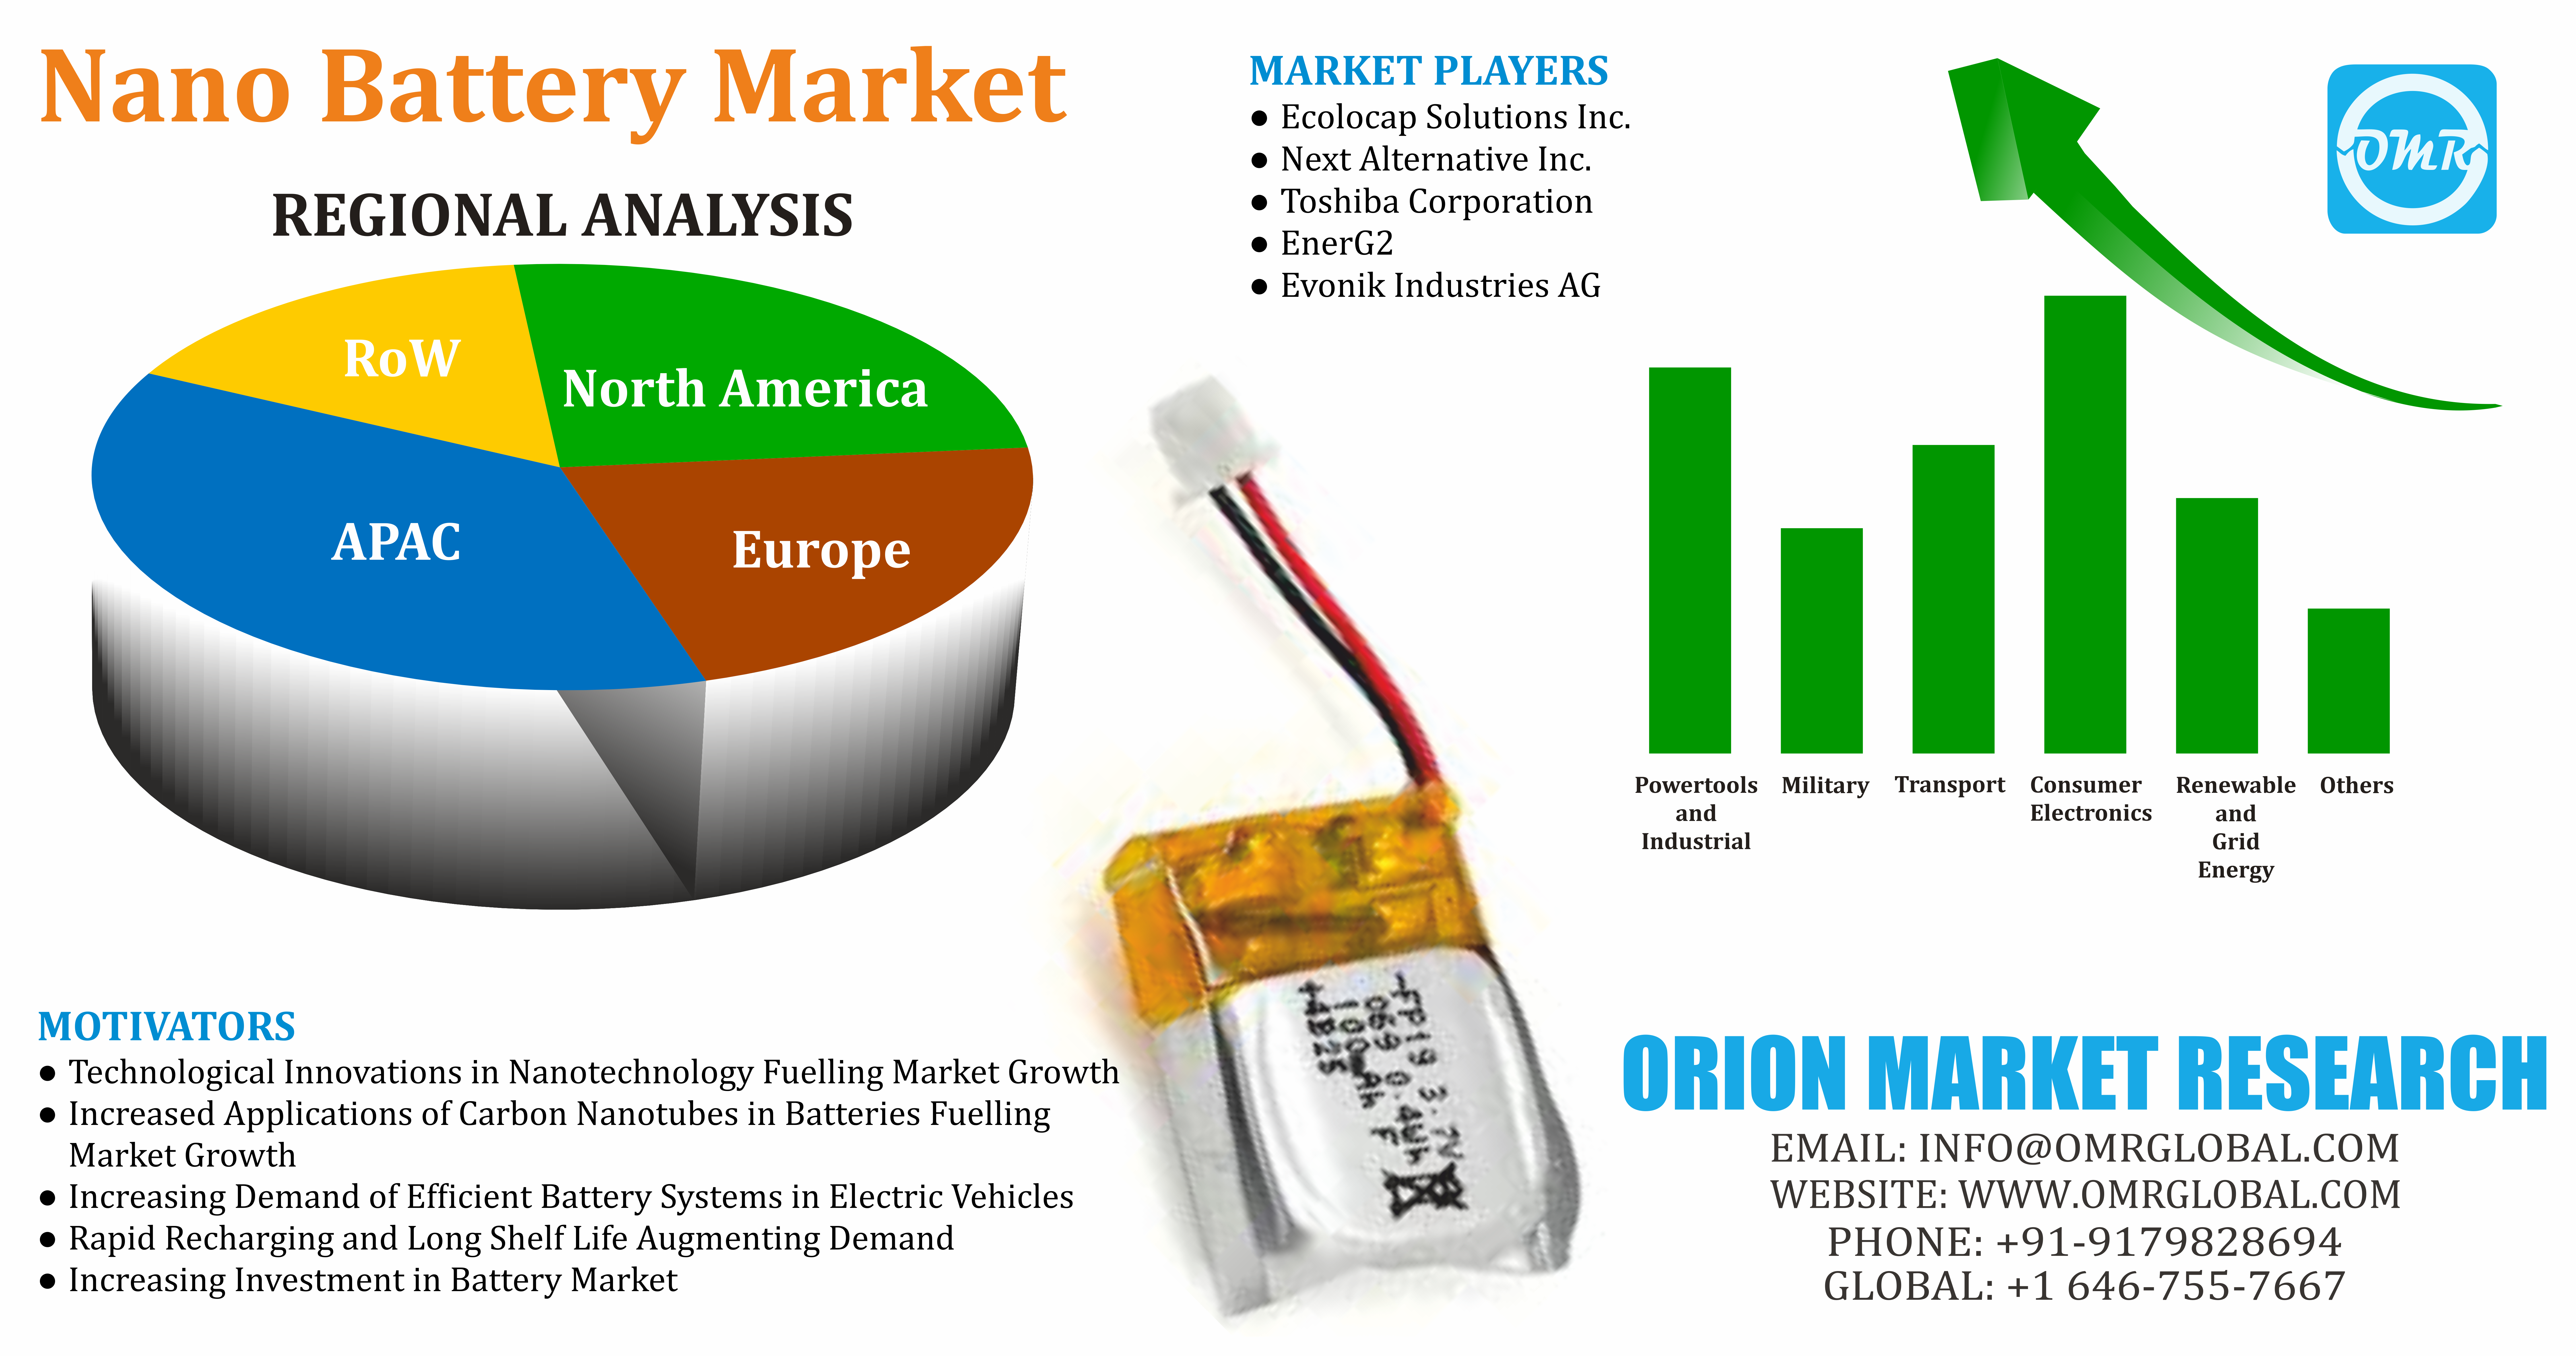 Nano Battery Market Size, Share, Trends, Growth